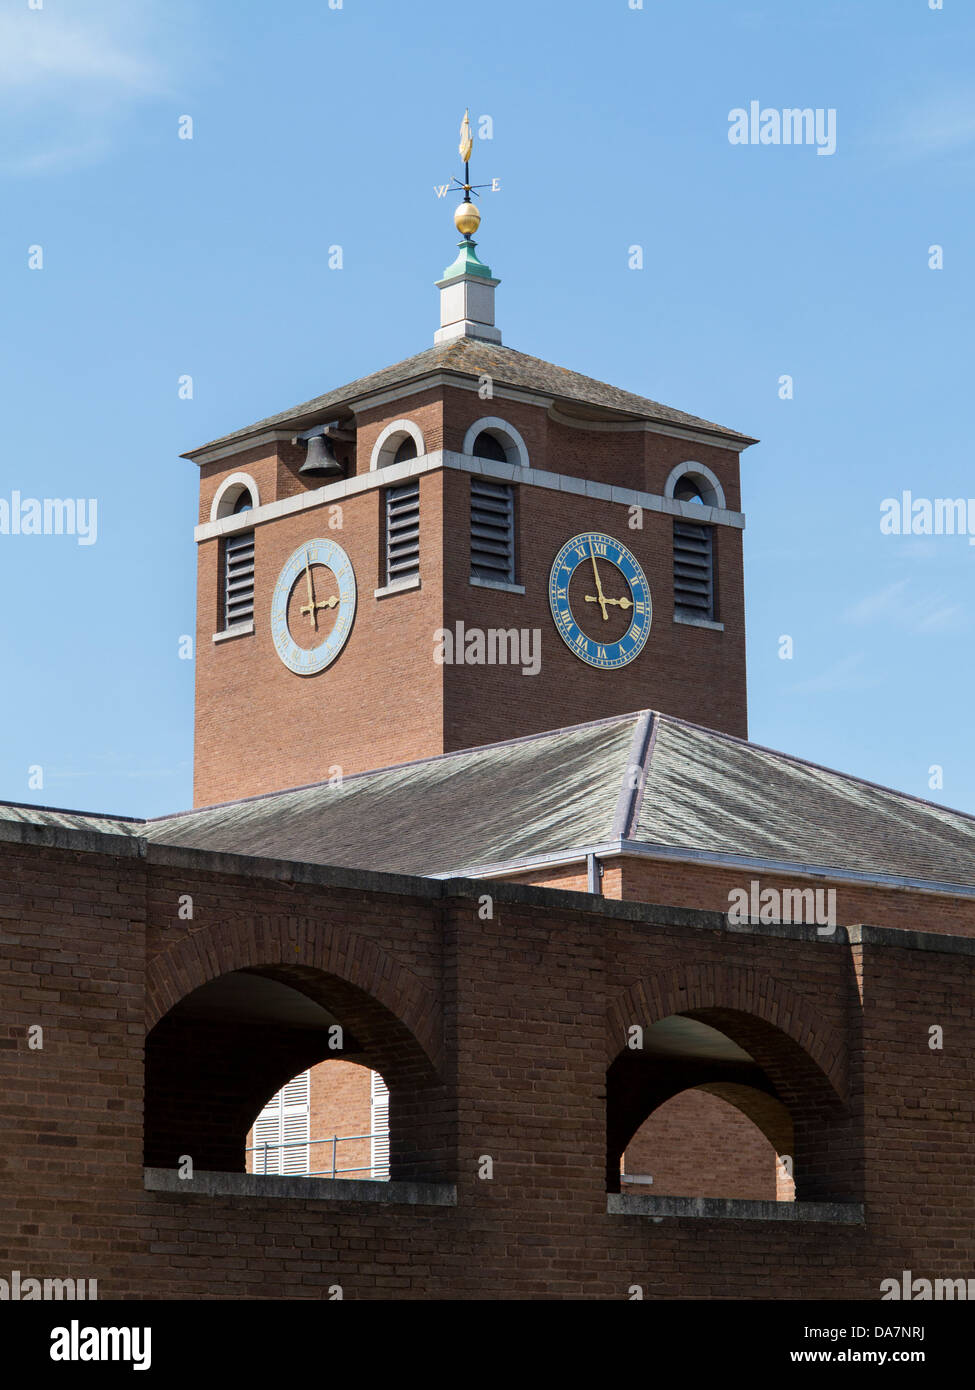 Exeter County Hall clock tower, Exeter, Devon, England. UK. - Stock Image